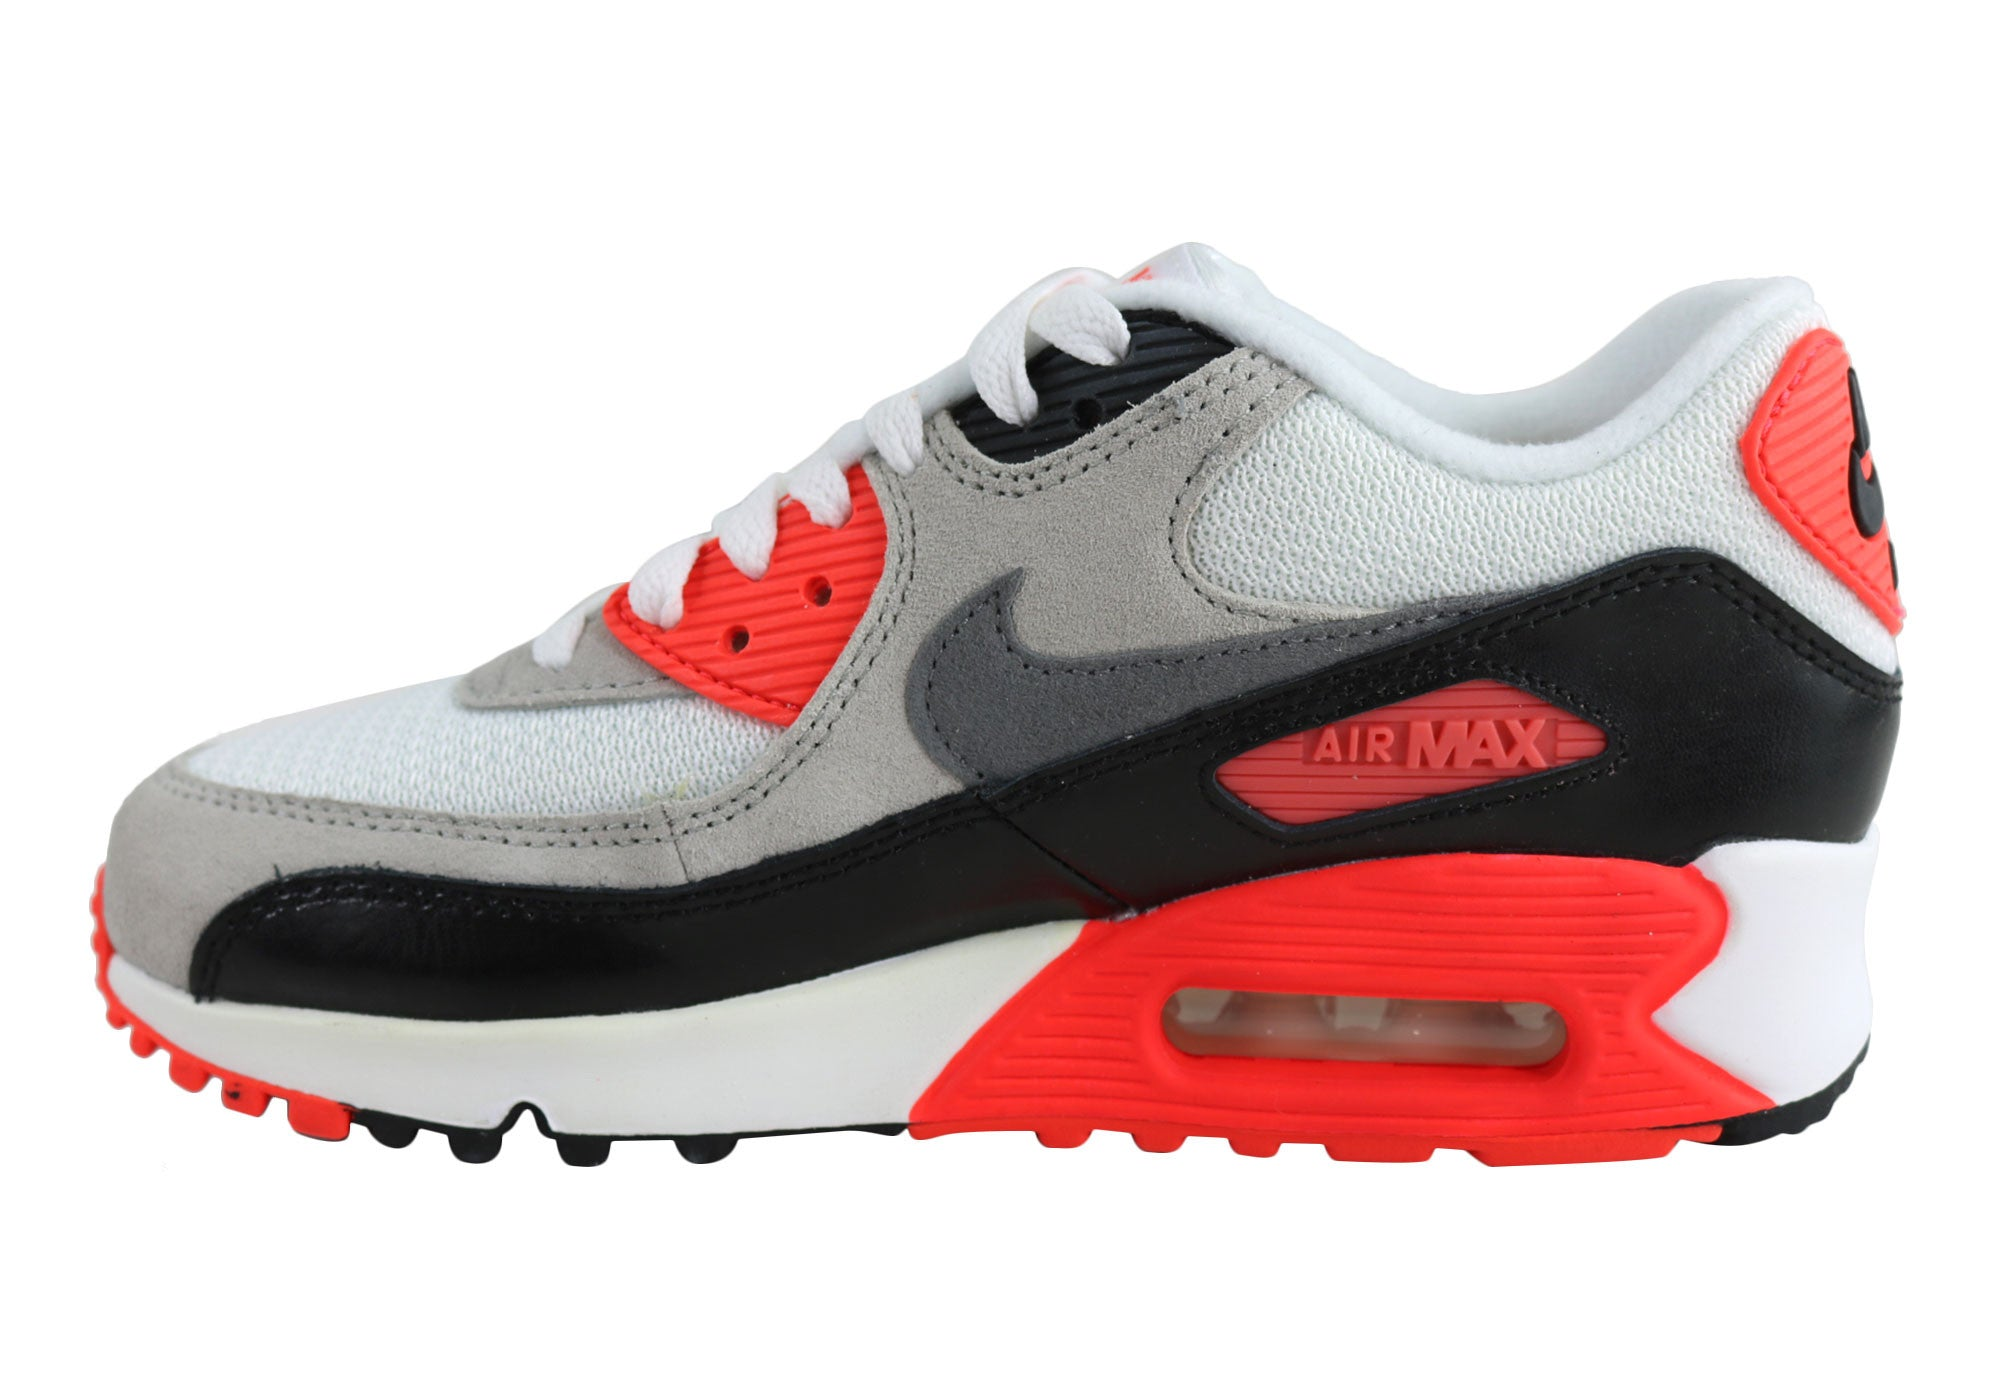 huge discount 611ec 6957b Nike Air Max 90 Premium Mesh (Gs) Older Kids Shoes - KidsShoes